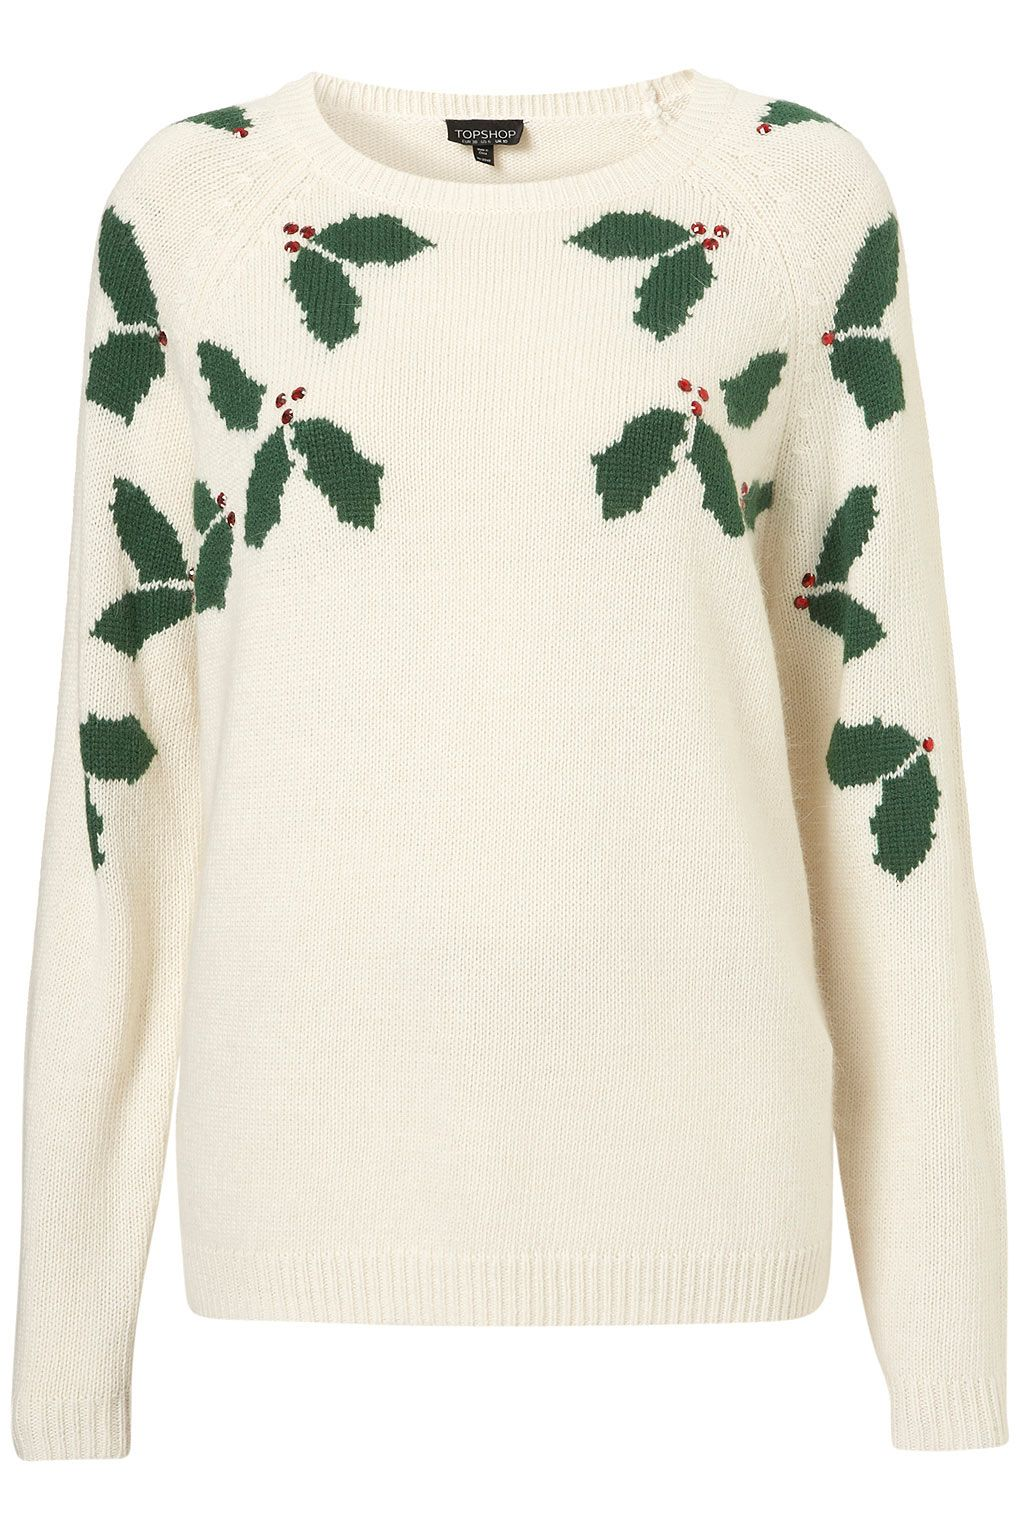 7ef34aad3fc3 Topshop - Knitted Xmas Holly Jumper | Clothes | Christmas jumpers ...